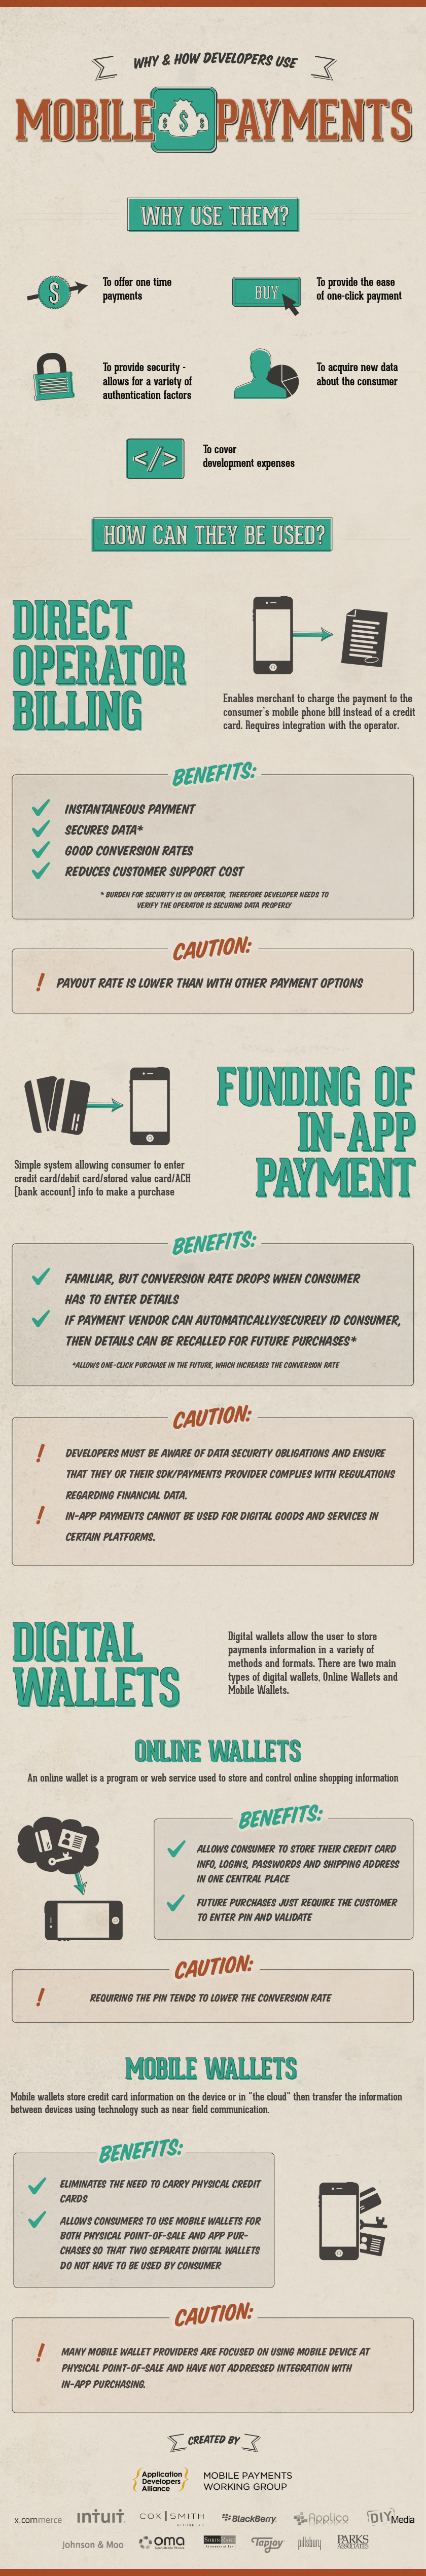 Mobile Payments Infographic-Final draft.jpg